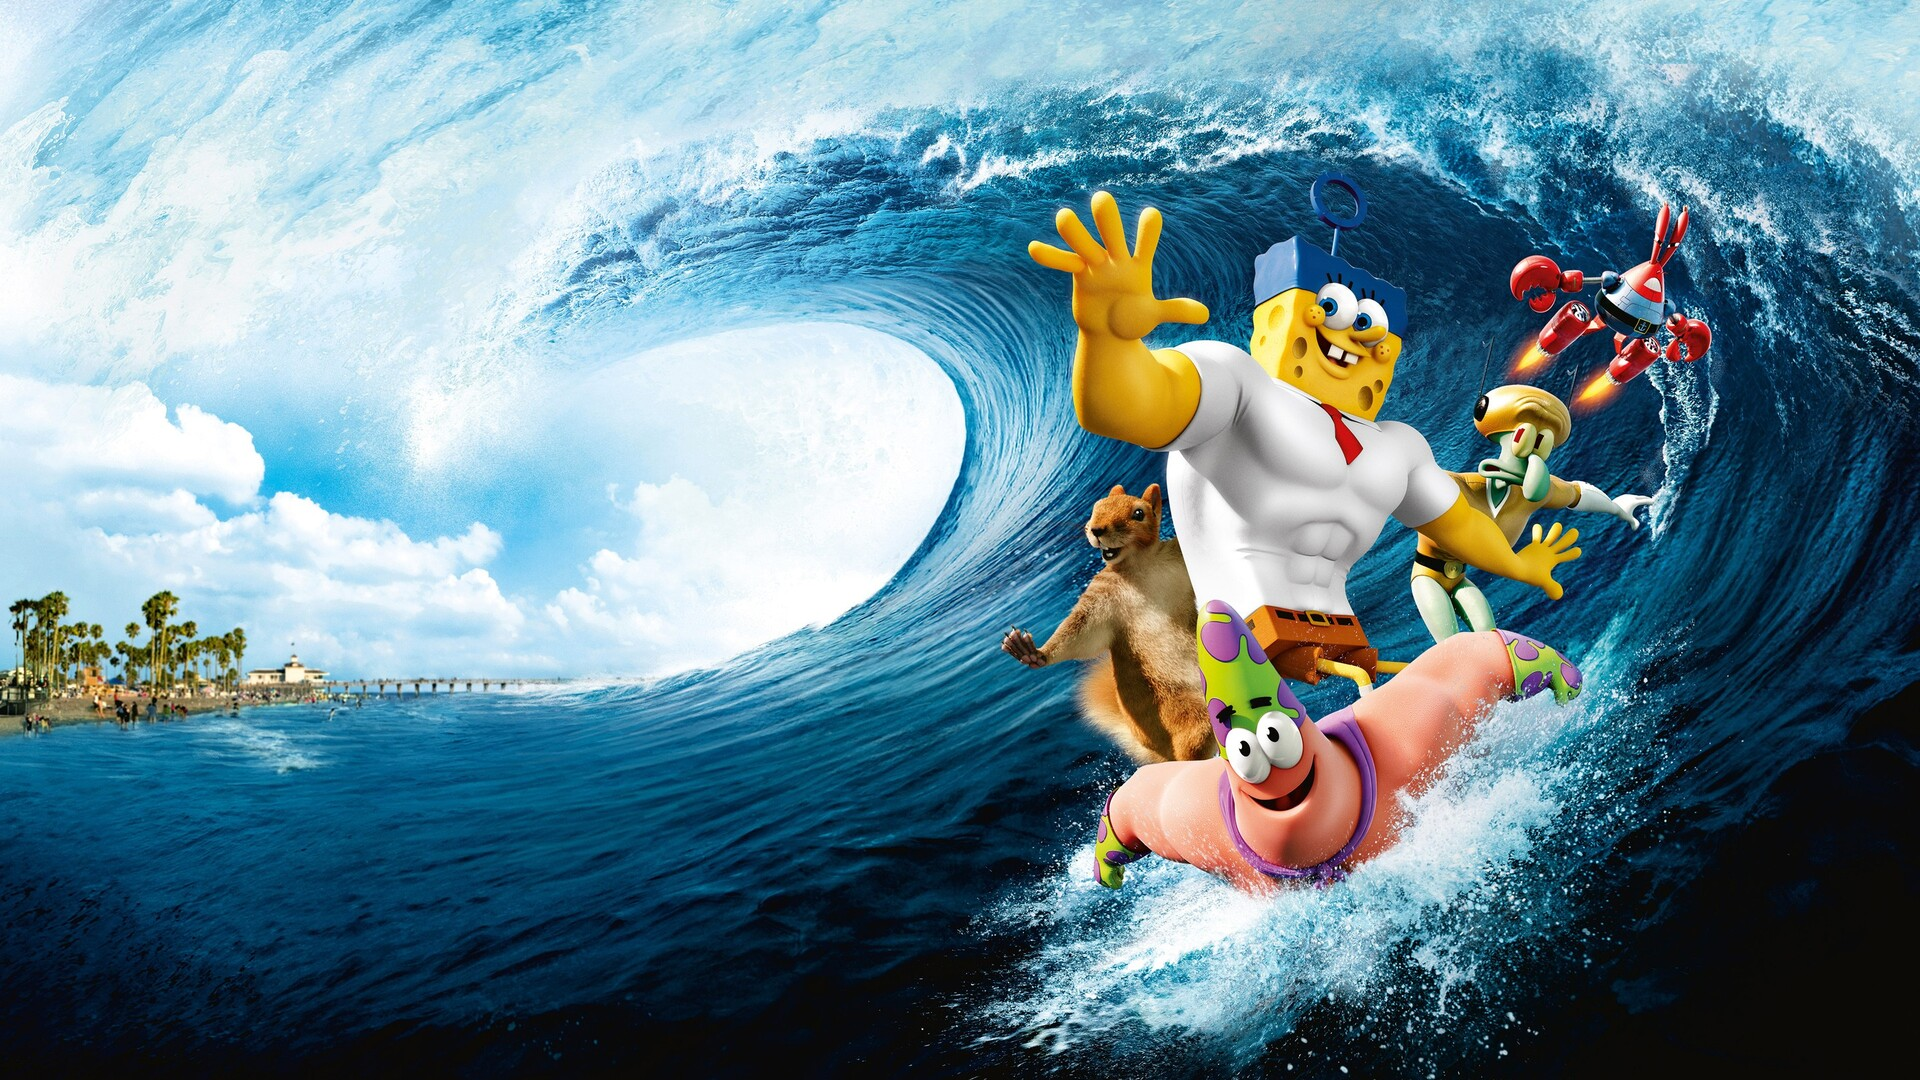 1920x1080 the spongebob movie laptop full hd 1080p hd 4k wallpapers